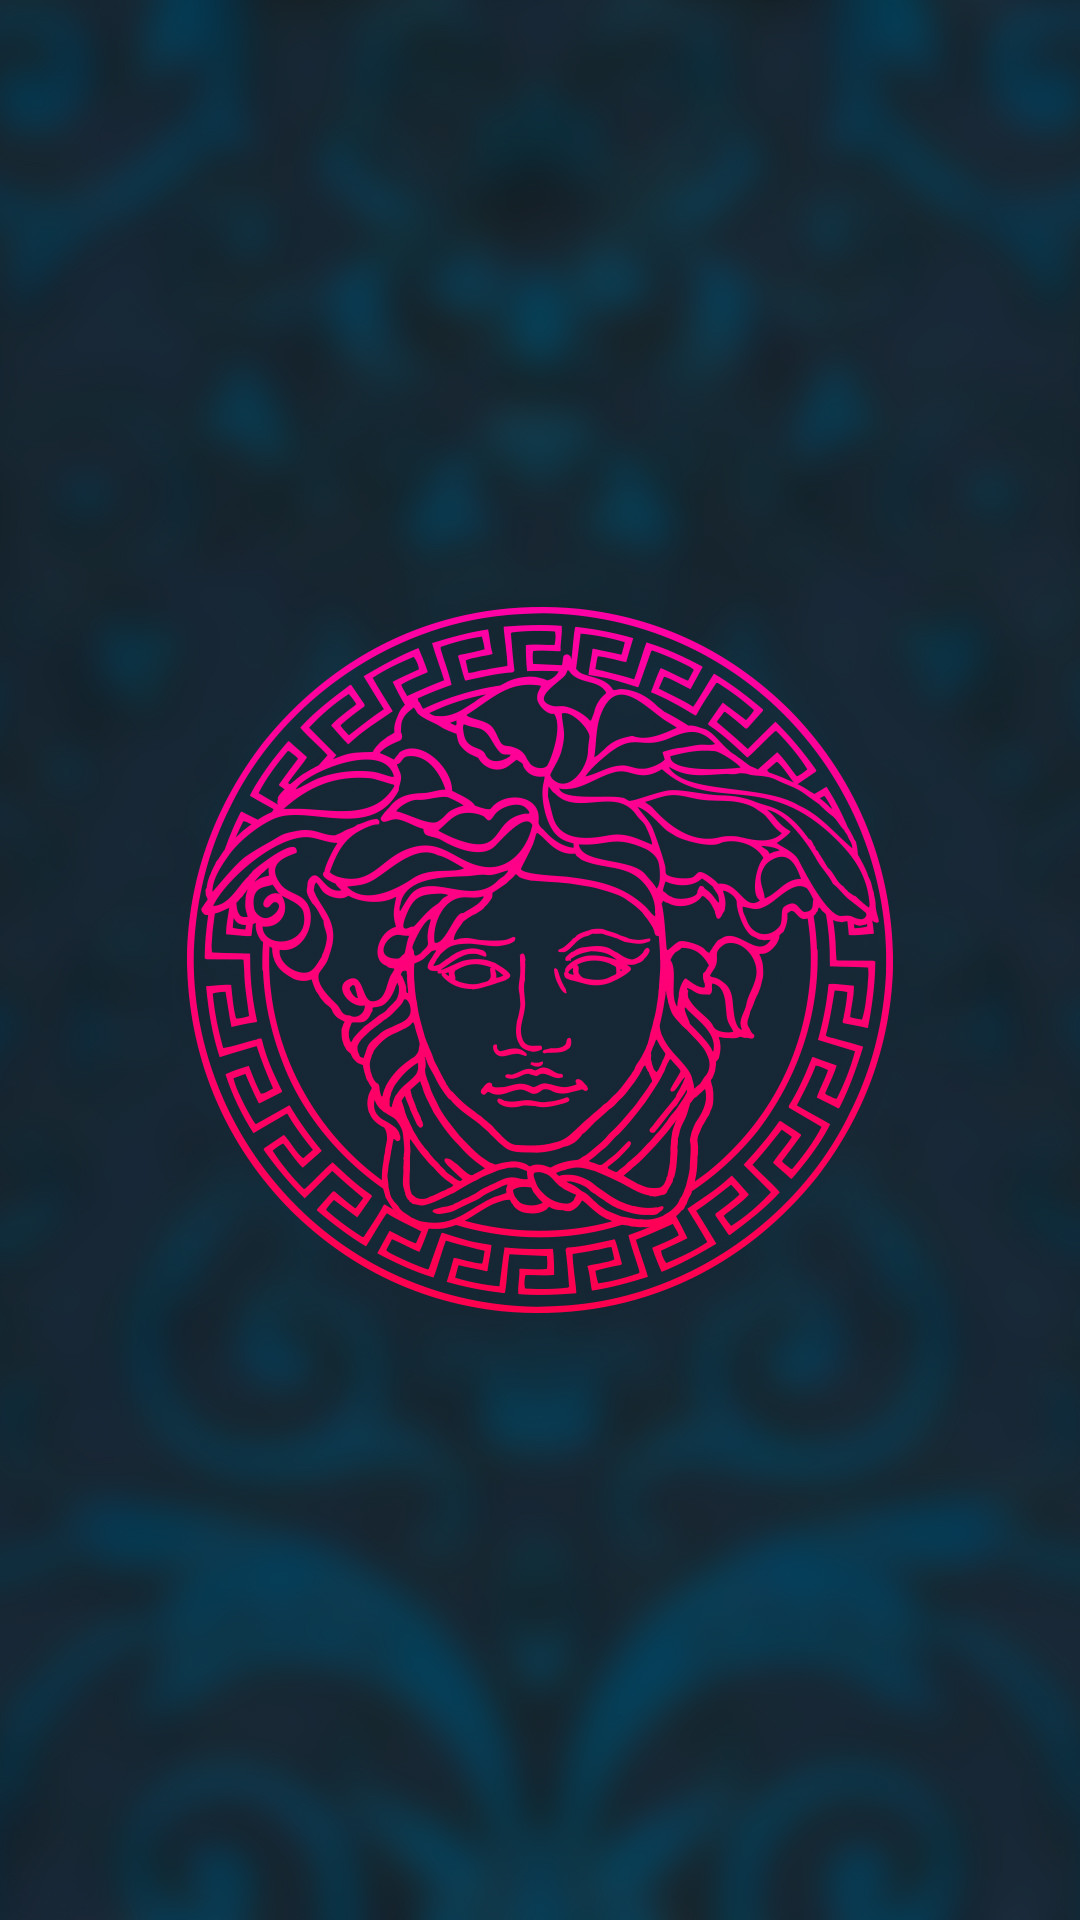 versace, wallpaper, background, phone, simple, clean, minimalism,  illustration #